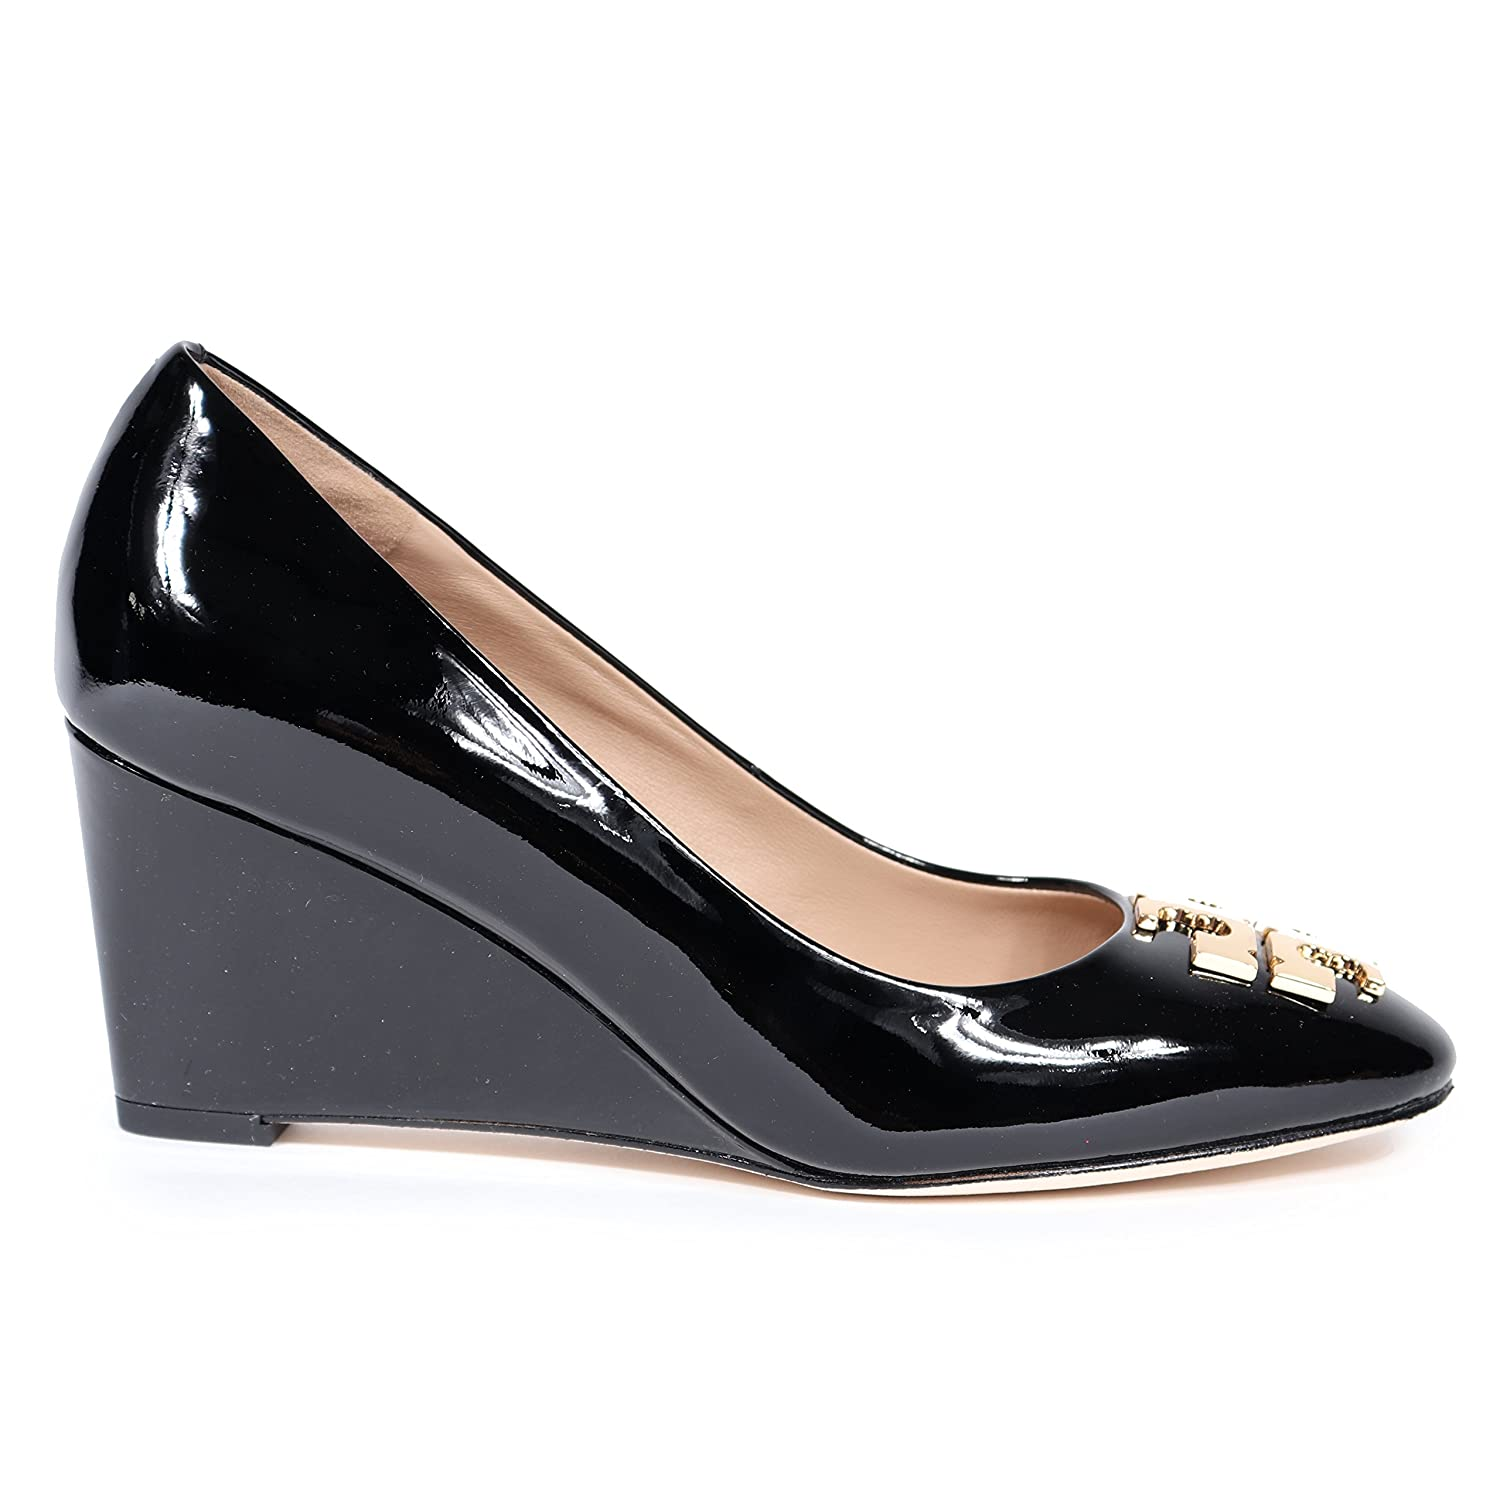 9fde7b848 Tory Burch 36497 001  Raleigh  70MM Wedge Black Patent Leather Pump (Women)  Size 8.5  Amazon.ca  Watches